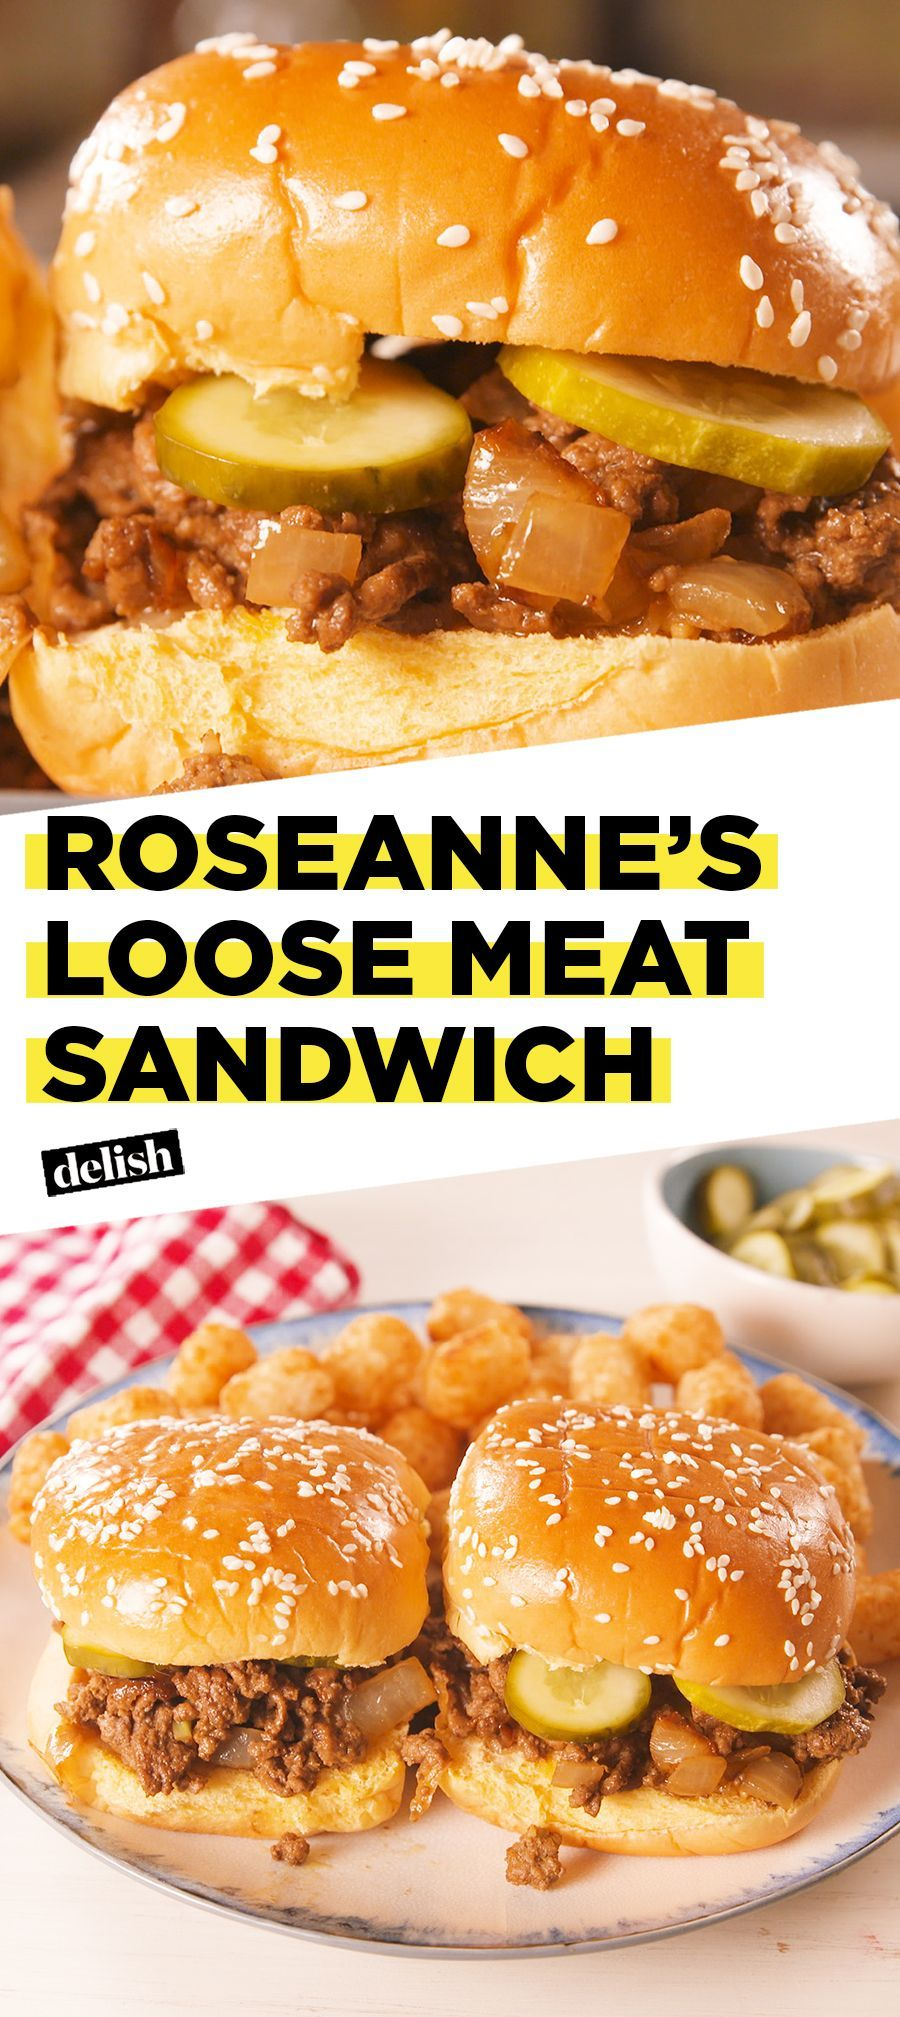 Roseanne fans, THIS is what you need to eat while watching the show. Get the recipe at Delish.com. #recipe #easyrecipe #roseanne #meat #cheesecake recipes #loose #meat #recipes for two #roseanne #Roseannes #sandwich #sandwich recipes #stir fry recipes